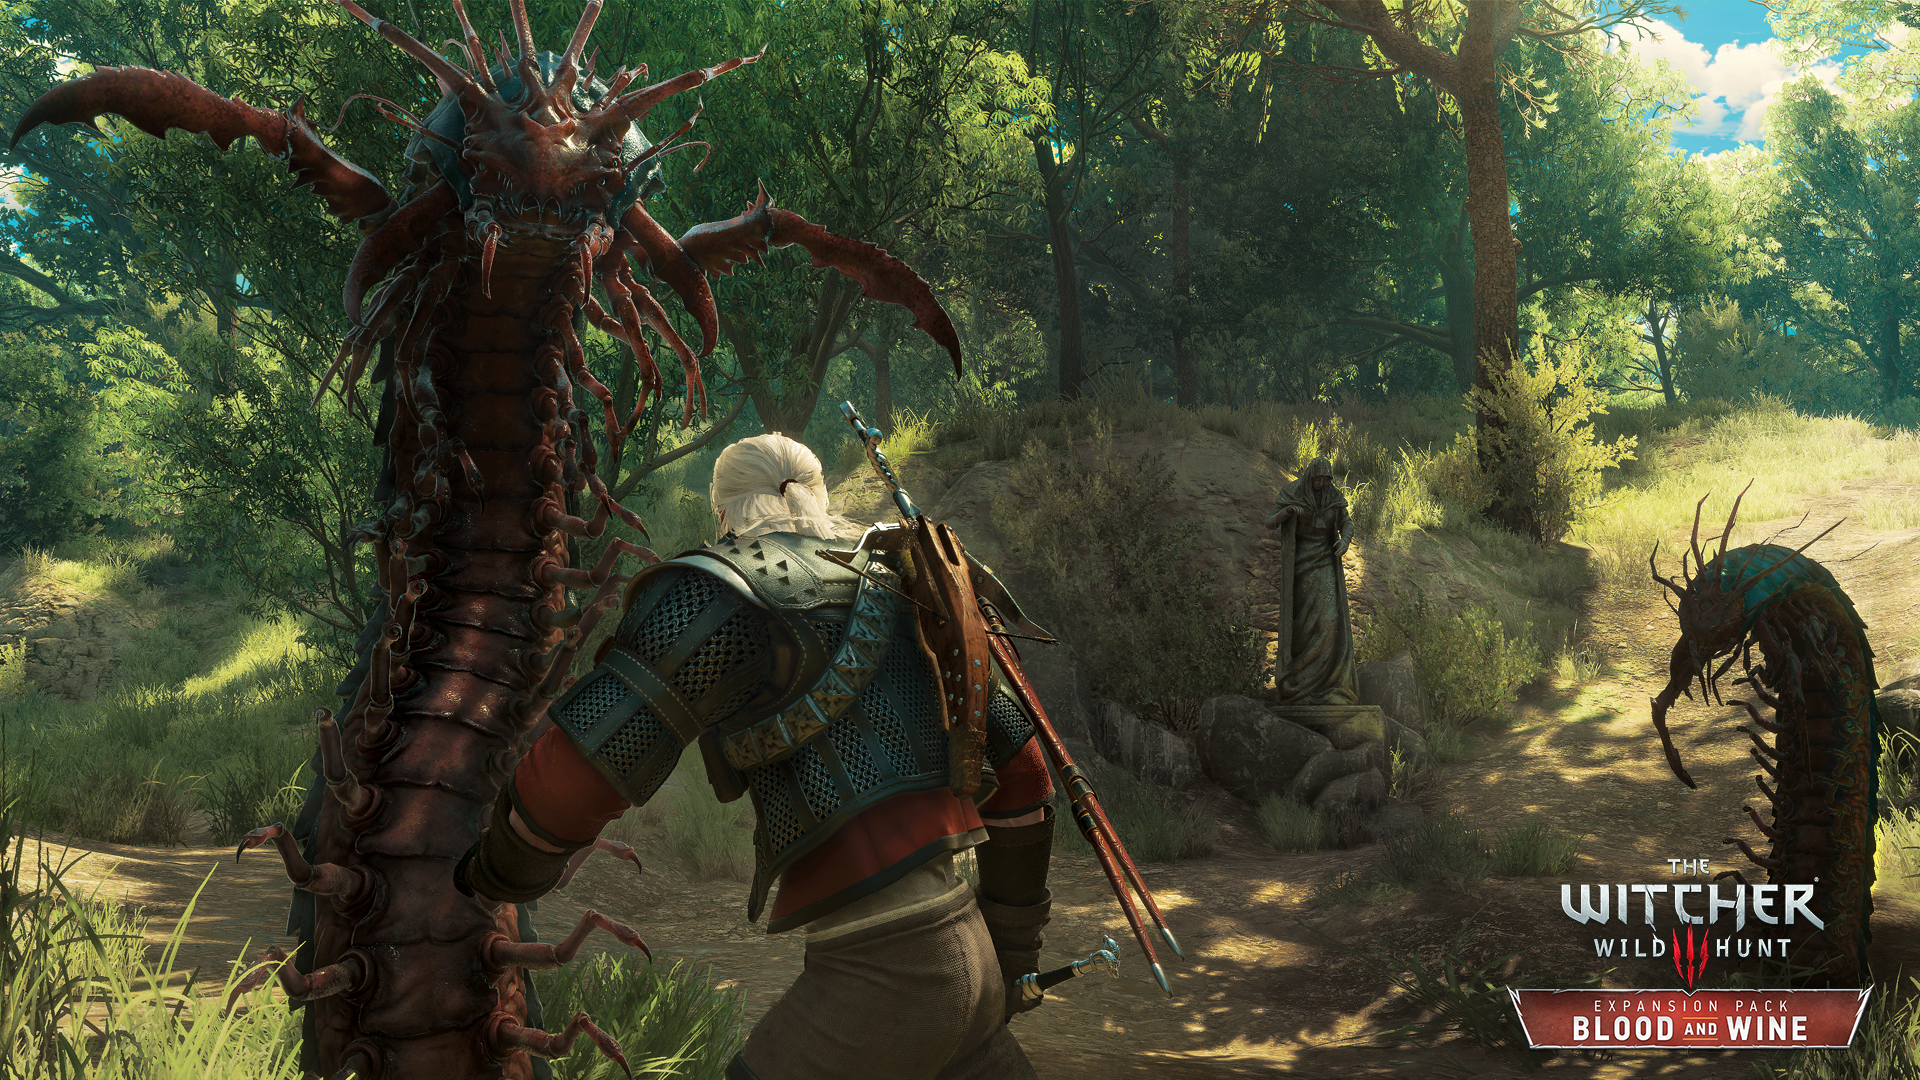 Photo of The Witcher 3 va fi portat pe next-gen si primeste ray-tracing